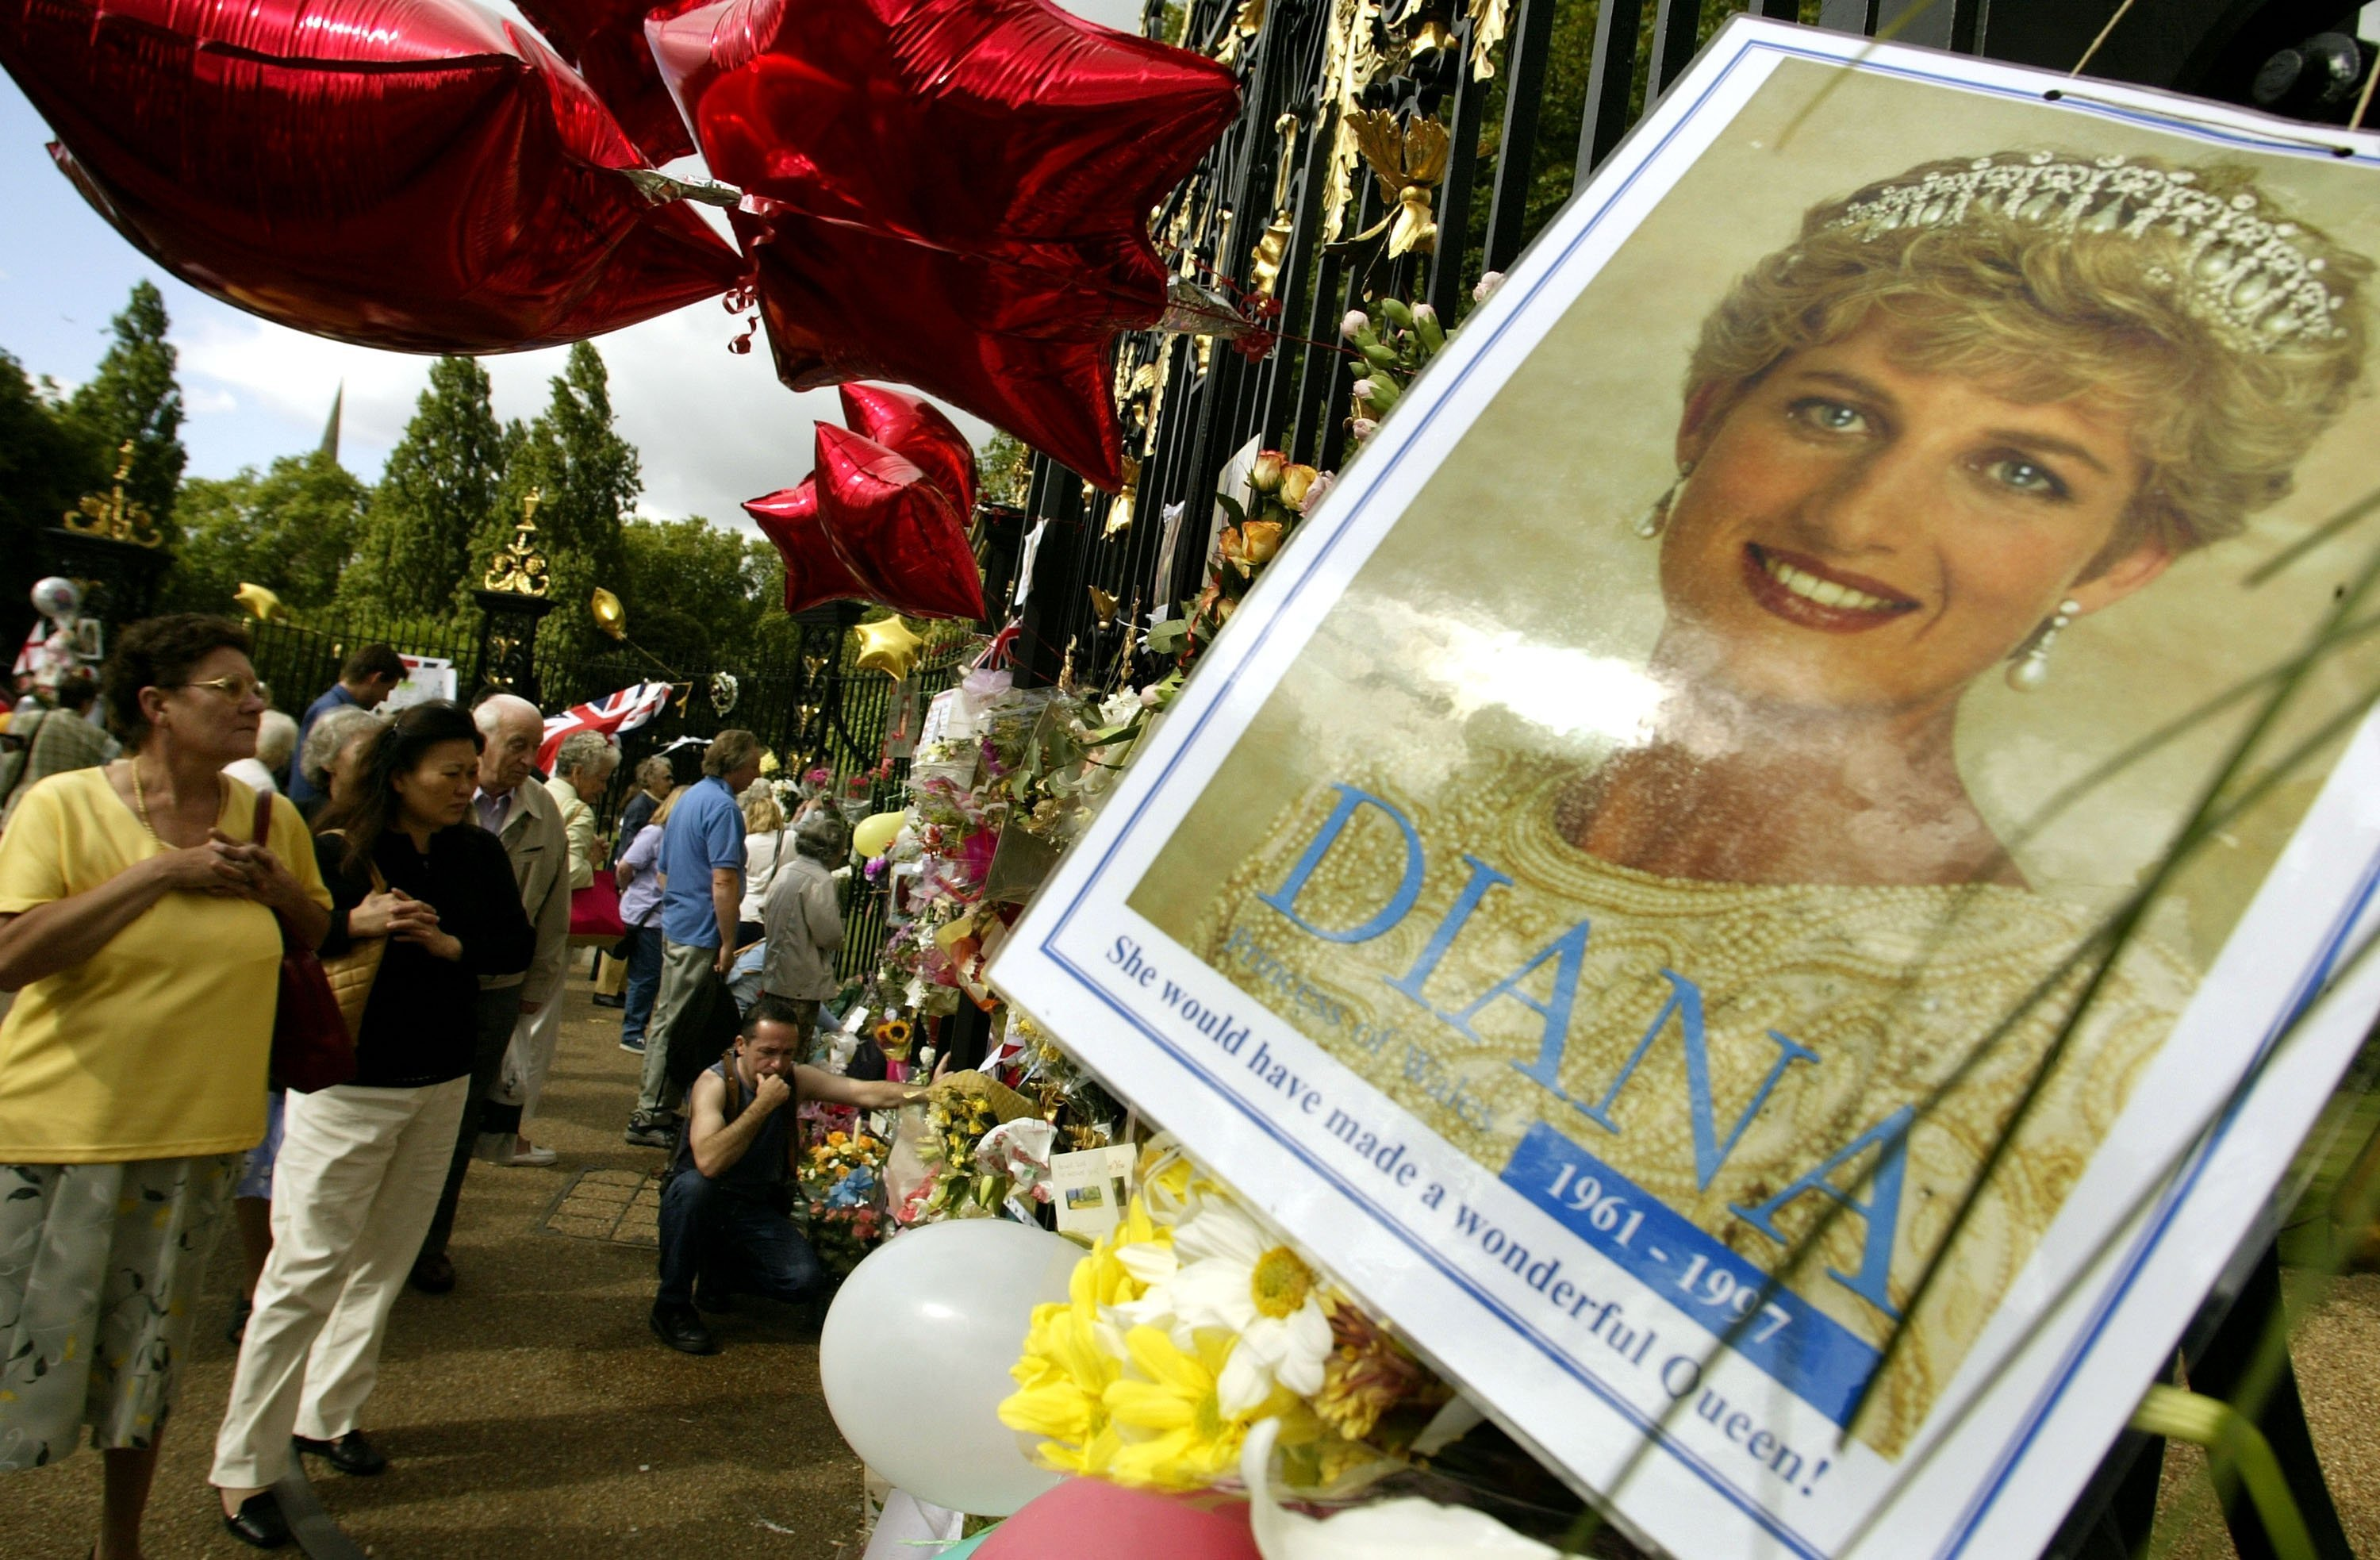 People placing flowers balloons and pictures of Princess Diana outside the gates of Kensington Palace in London, England | Photo: Getty Images